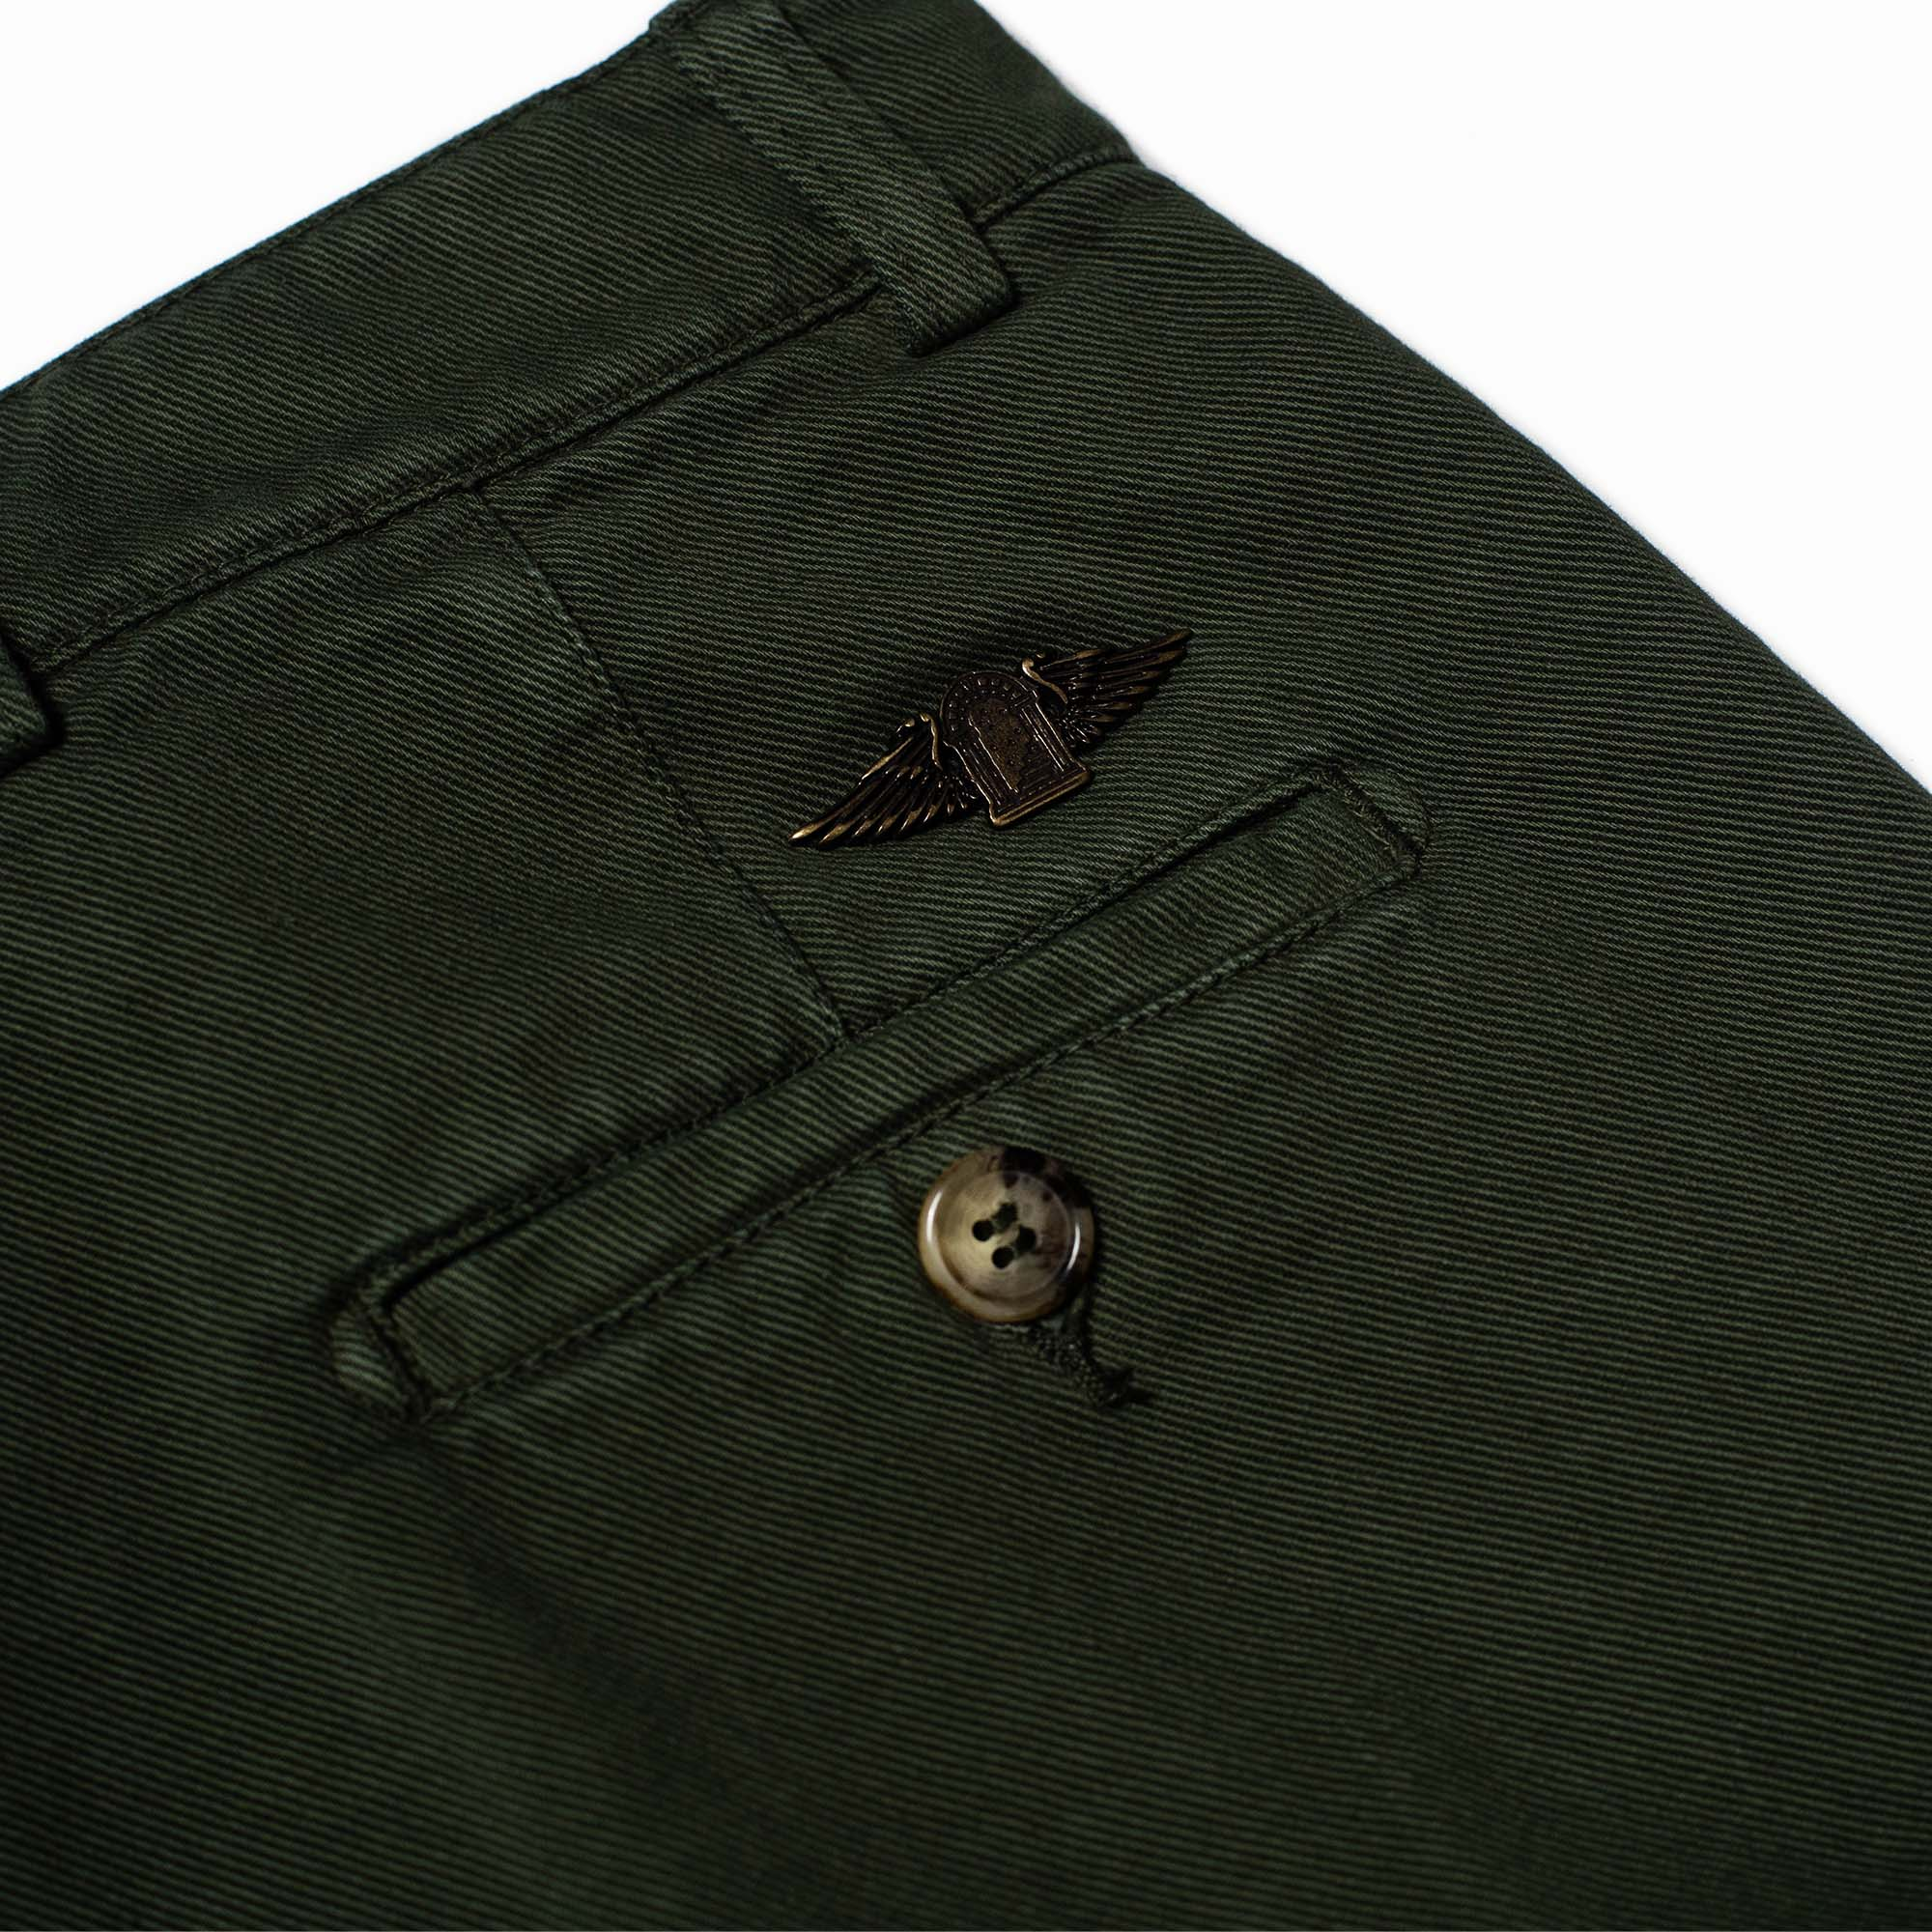 shangri-la-heritage-explorator-olive-cotton-twill-pants-still-life-back-pocket-logo